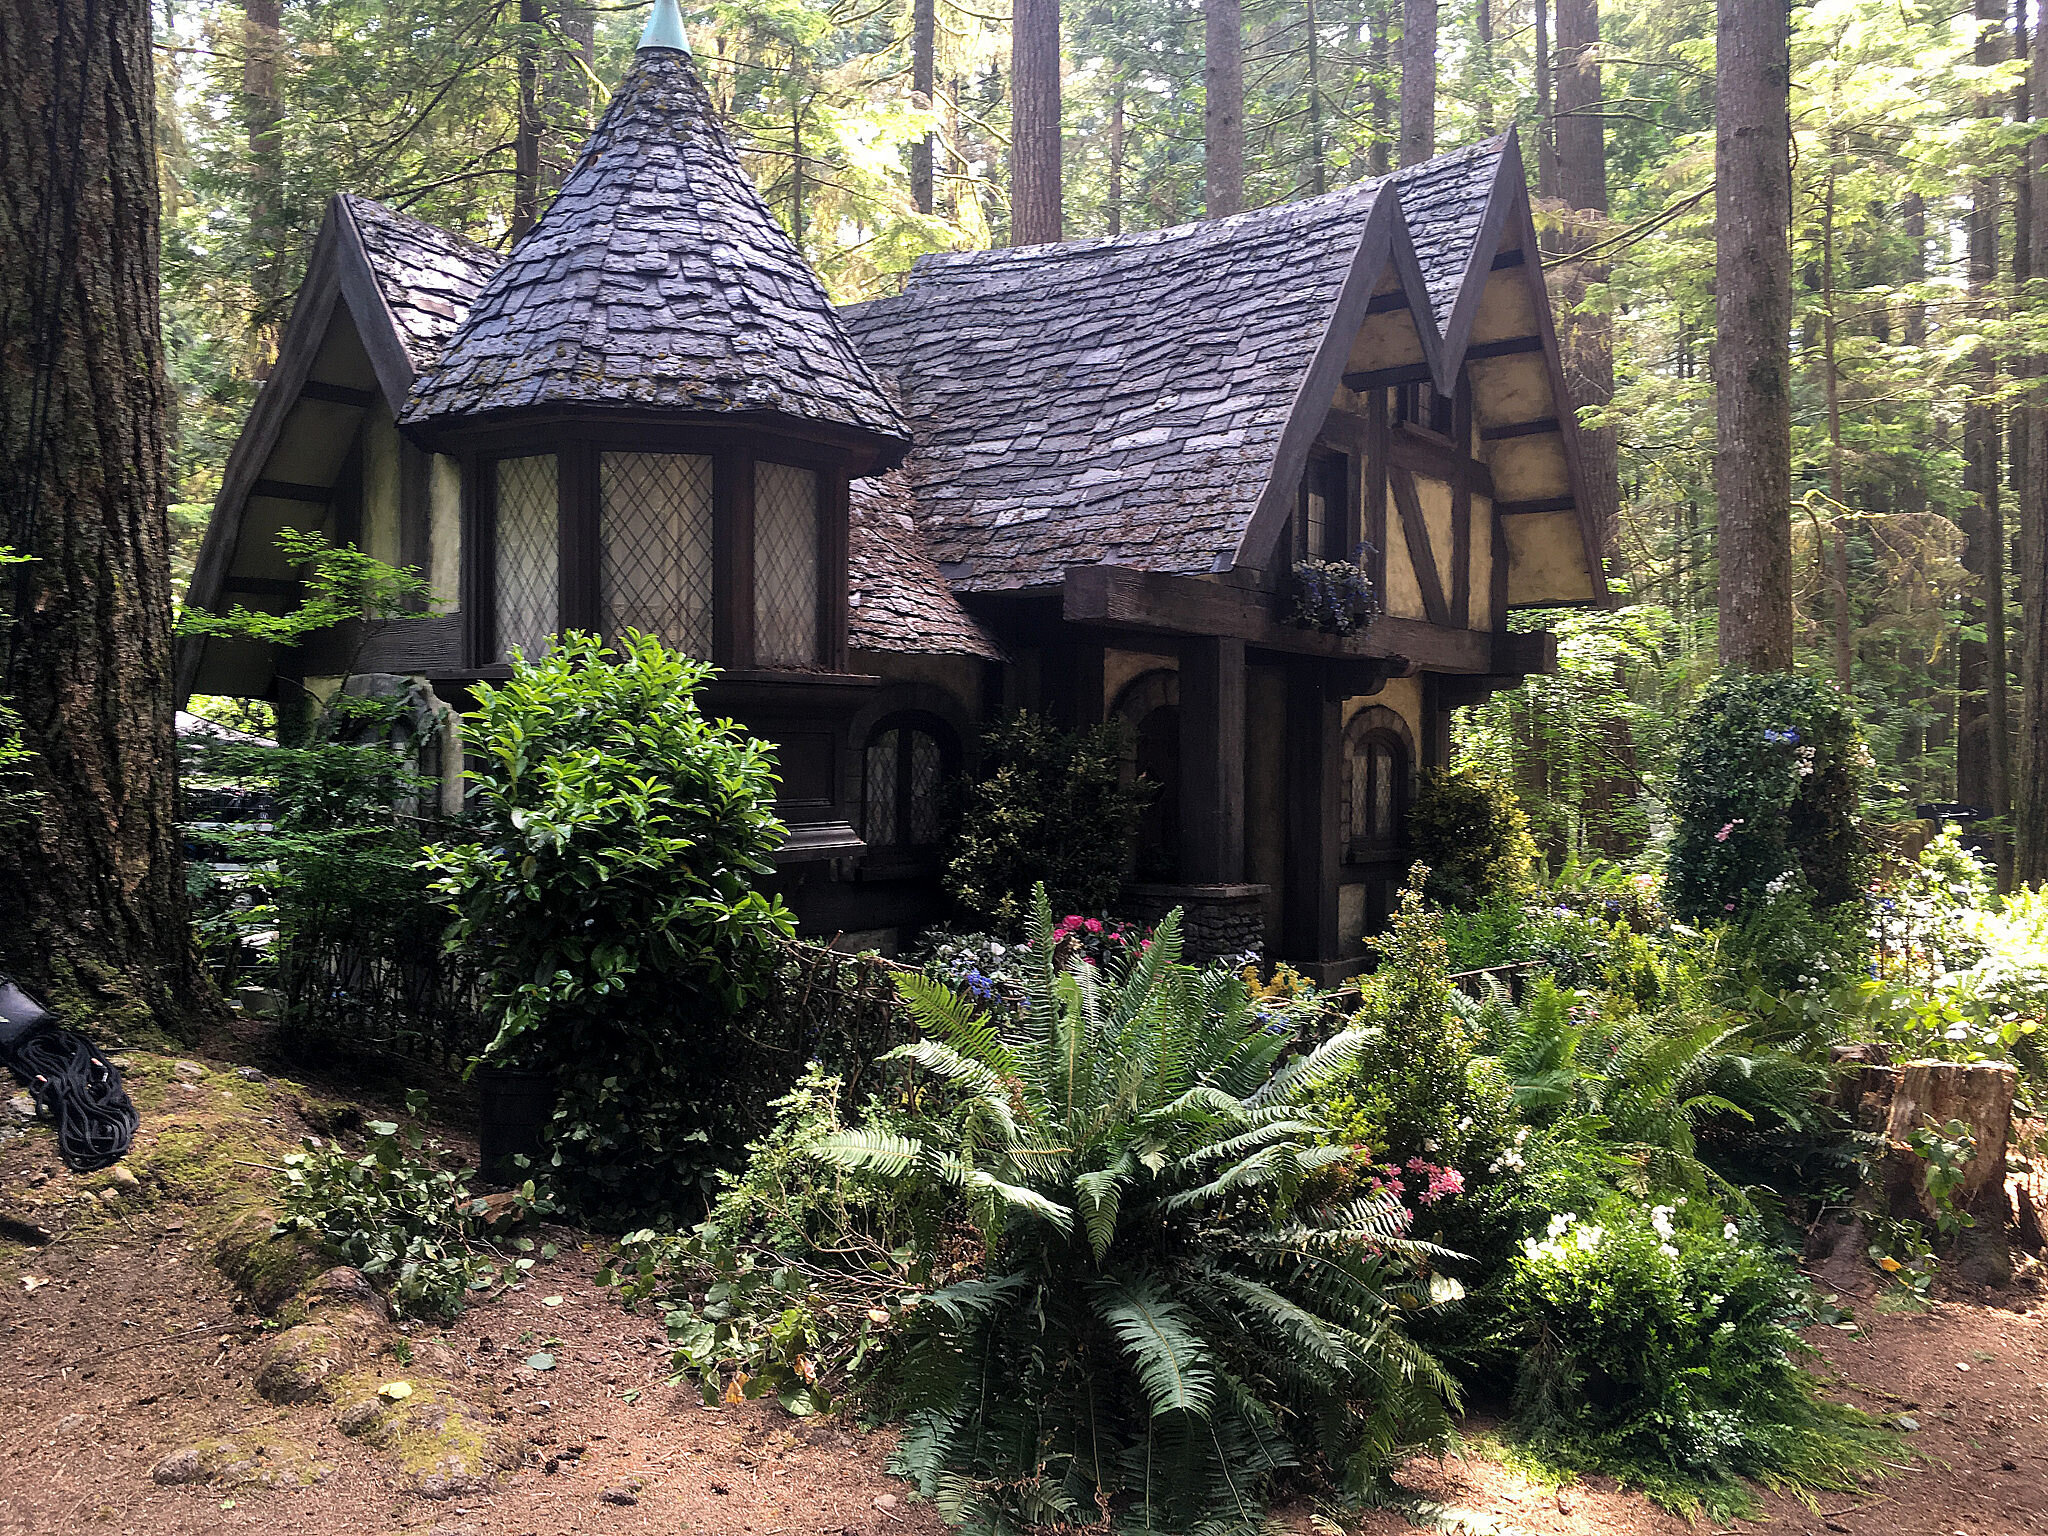 Another view of Audrey's retreat based on Flora, Fauna and Merryweather's fairy cottage from 1959's Disney classic Sleeping Beauty.